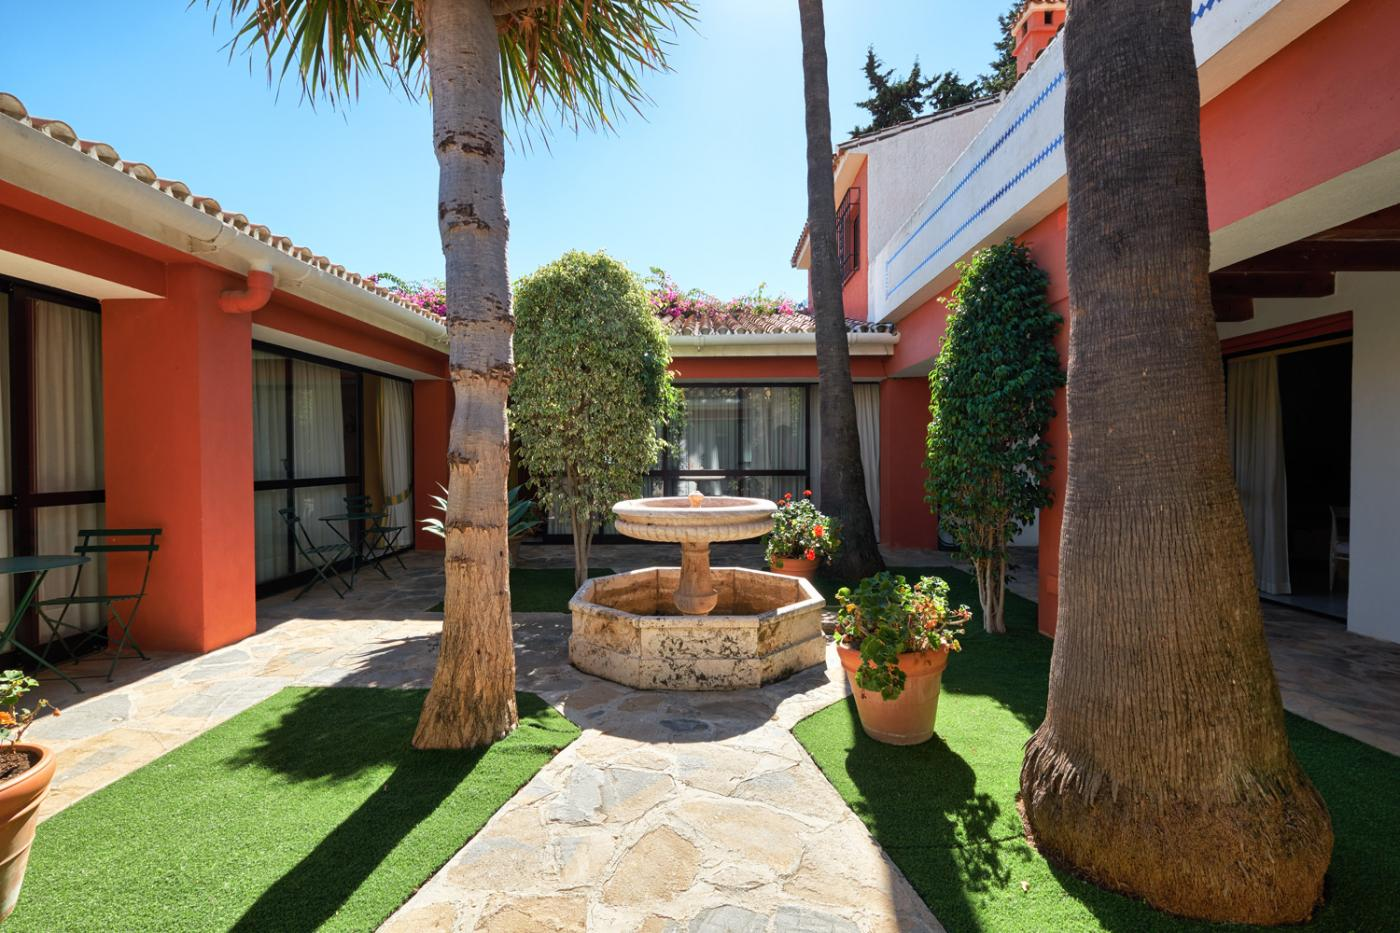 12 Bedroom Commercial for Sale in Marbella